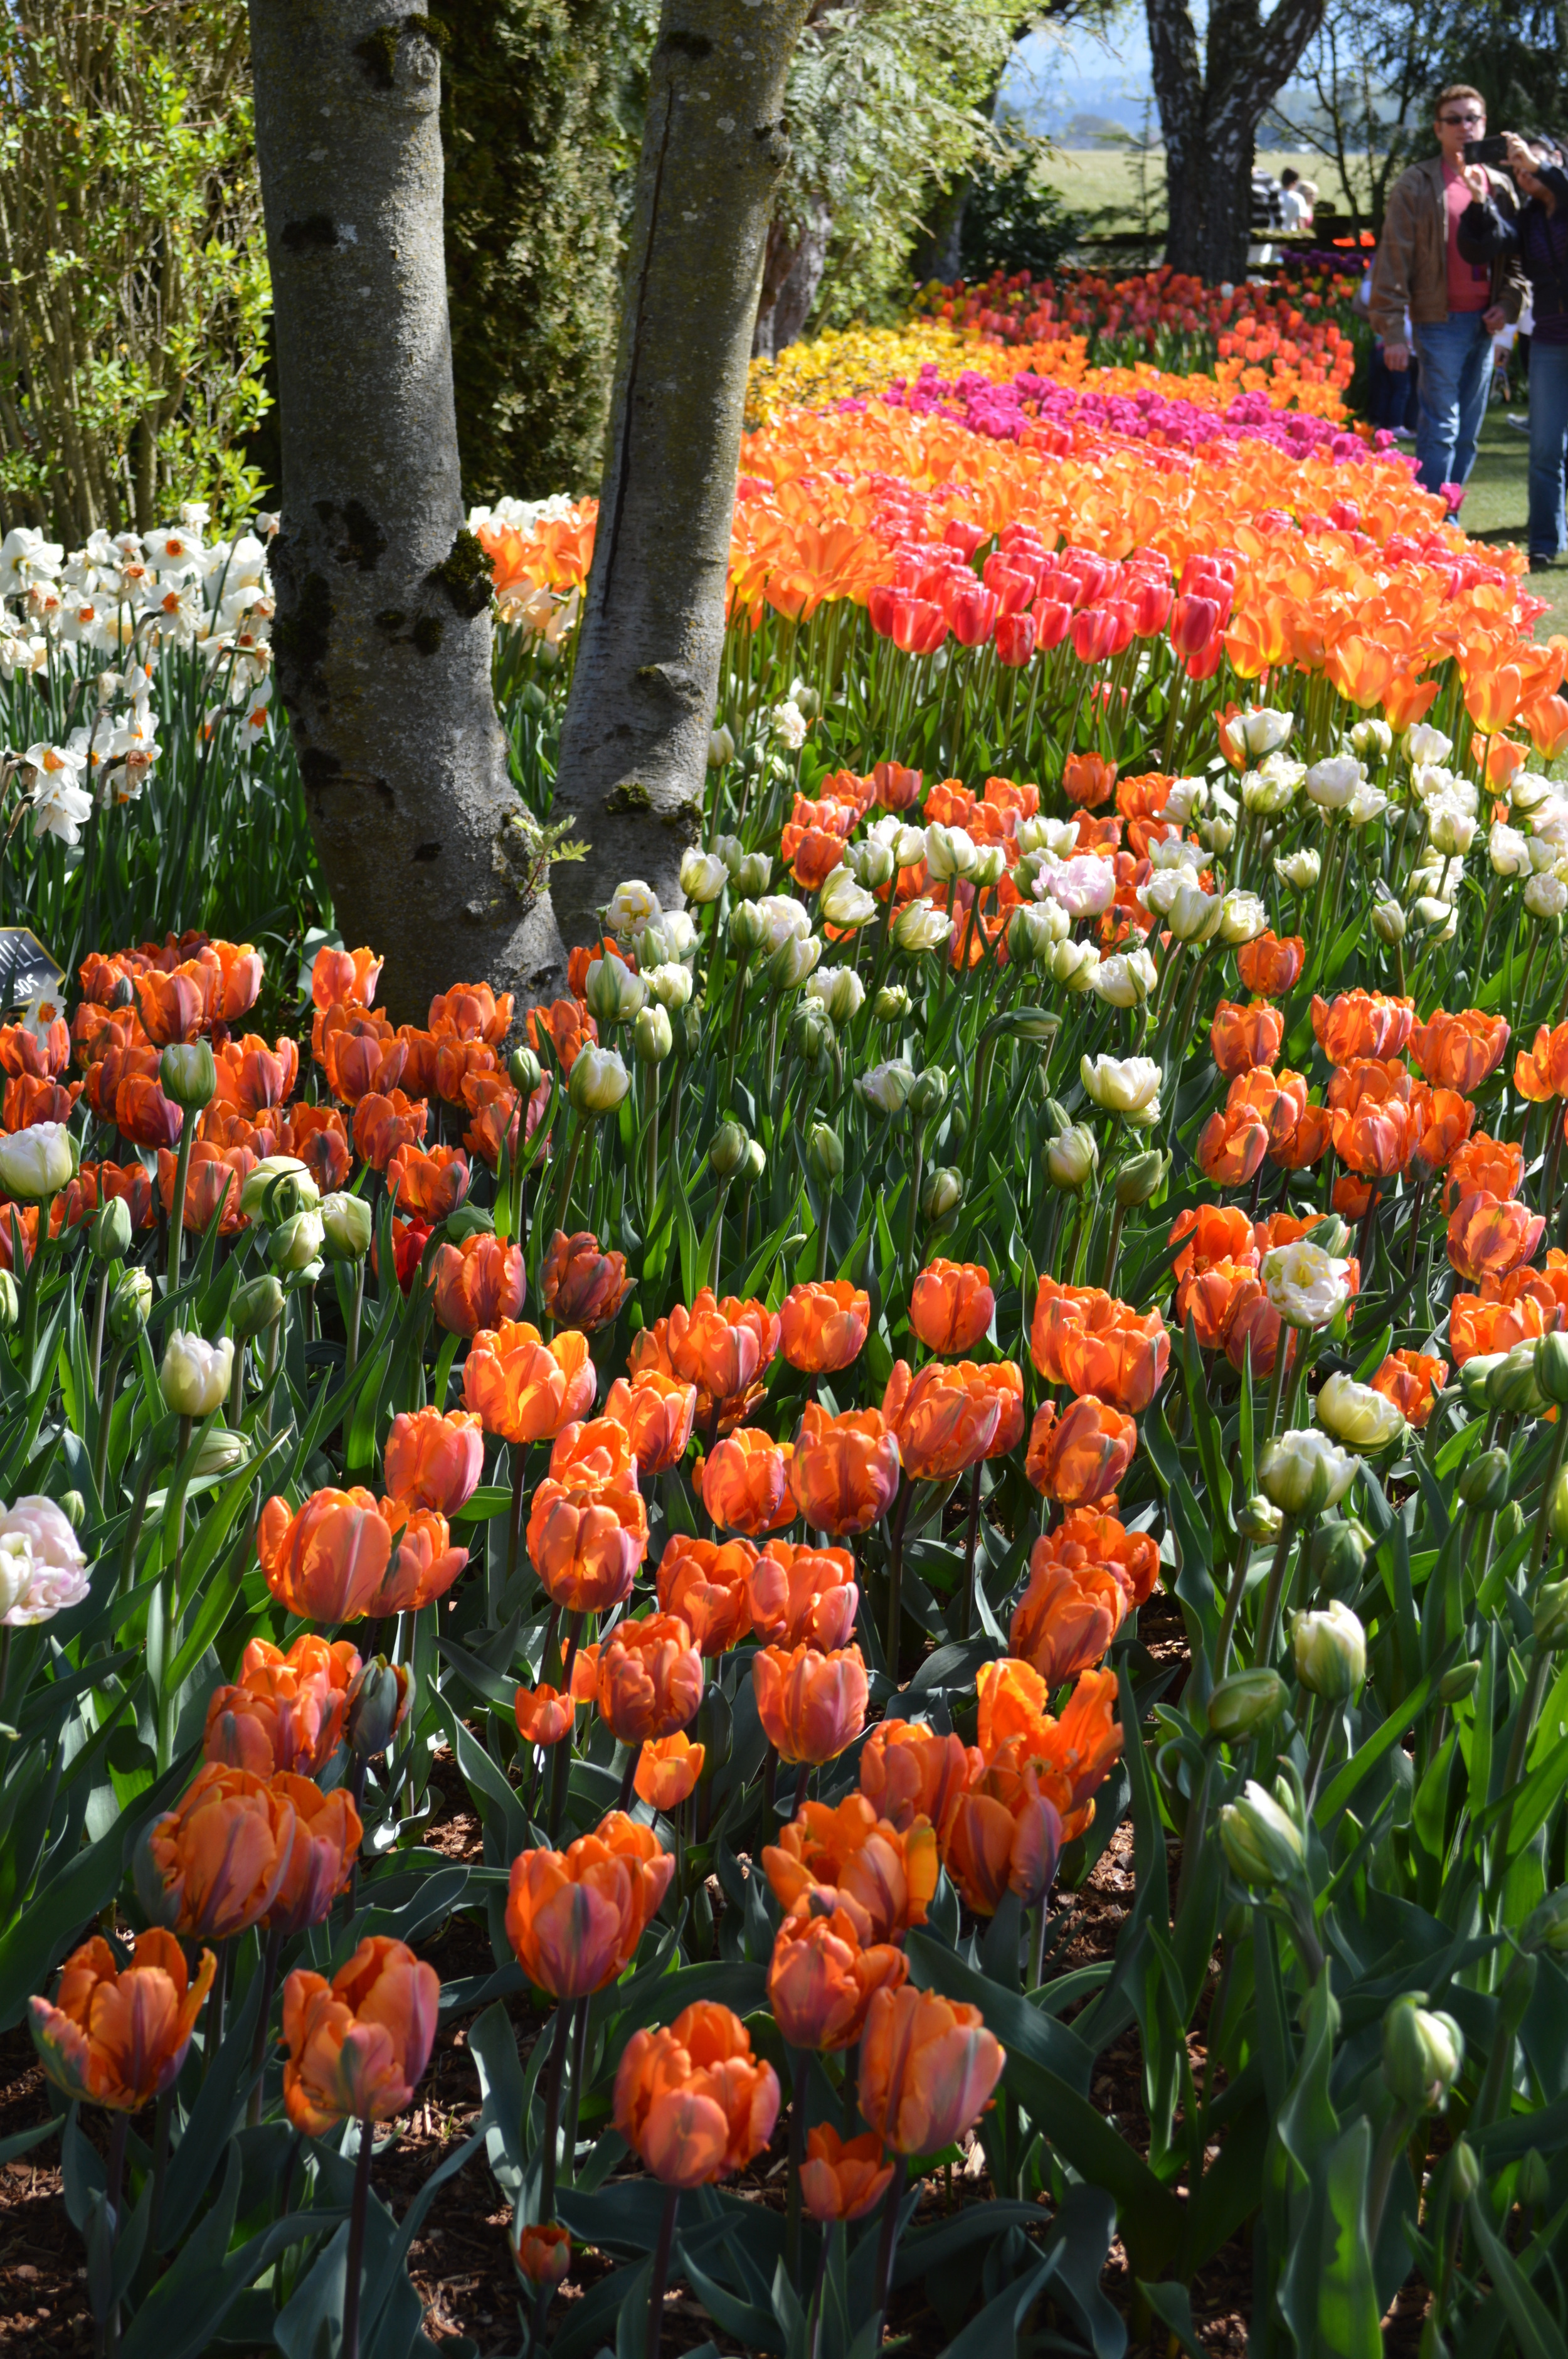 Now that's a colorful flower bed...